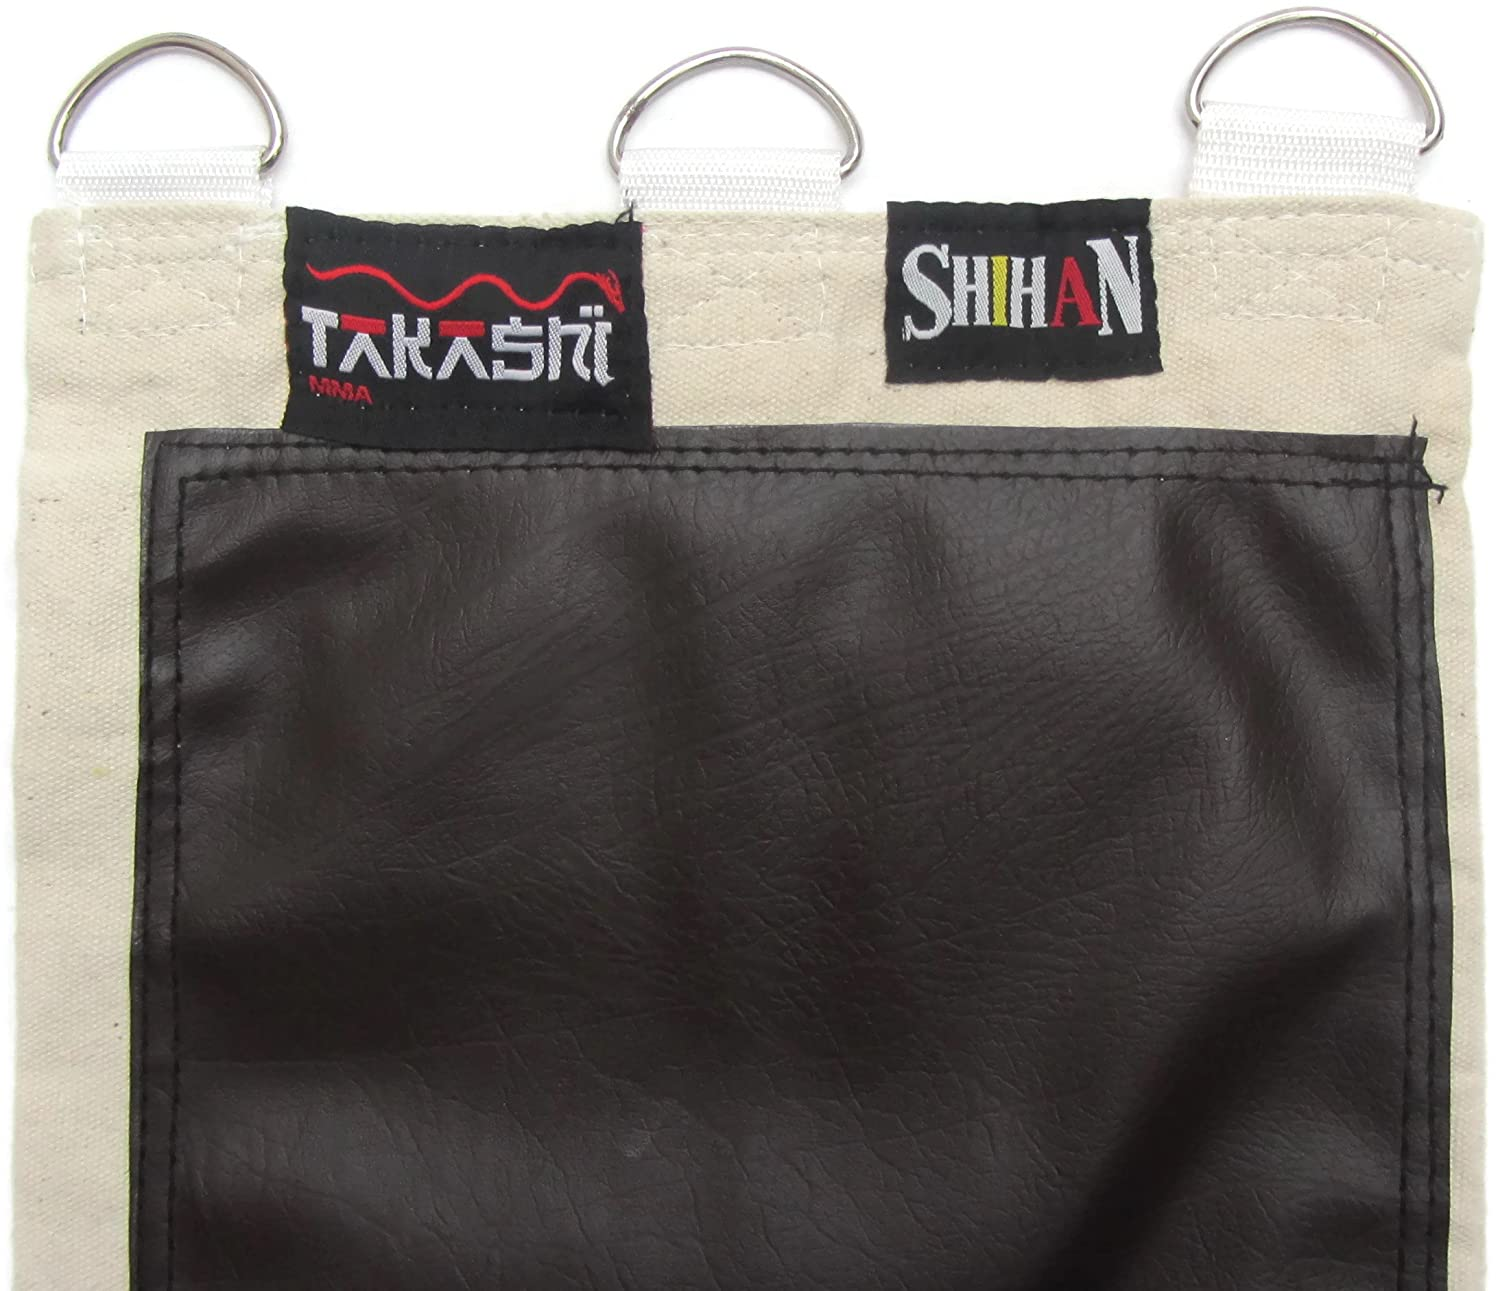 3 Sections Rexion Rezā LEATHER Wing Chun Canvas Wall Striking Bag 3 Unit - SHIHAN, New Design With Zipper Protection , Iron Palm. Makiwara Hand Training Sand Wall Bag Canvas Wall Striking Bag 3 Section's Wing Chun Kung Fu Sand Wall Bag with Hanging D-Ring